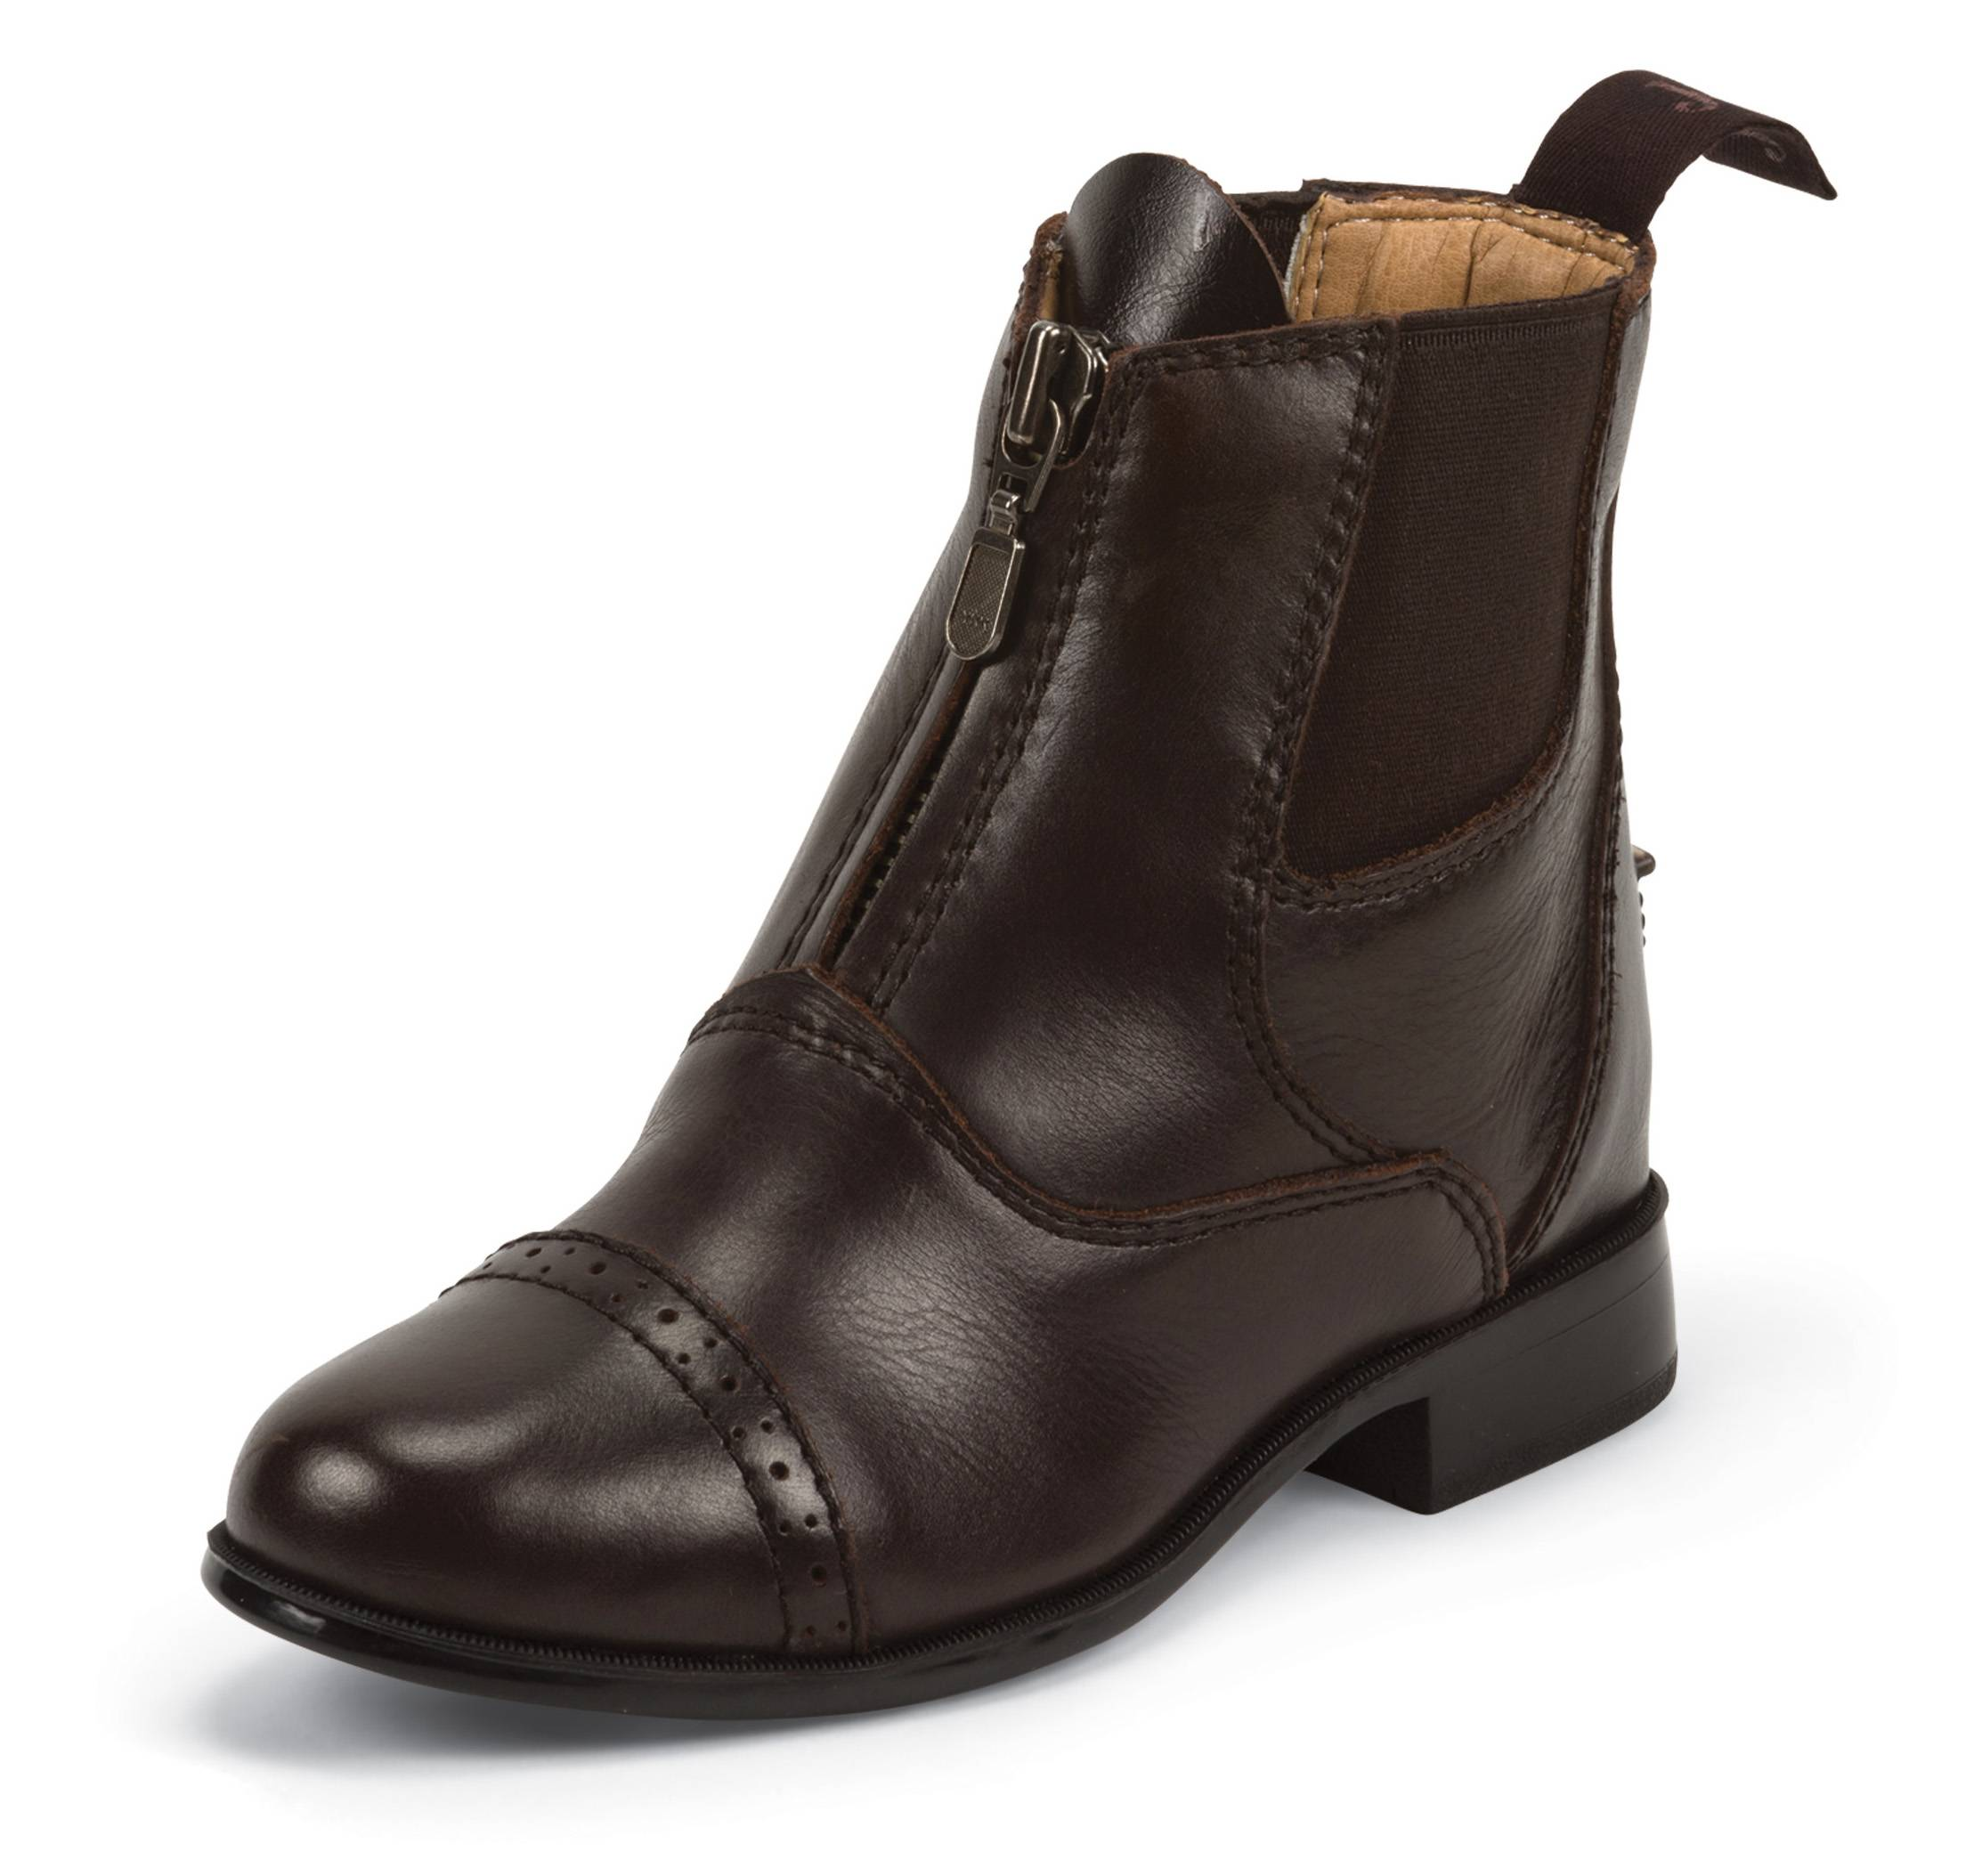 Justin Zip Paddock Boots - Kids - Chocolate Brown